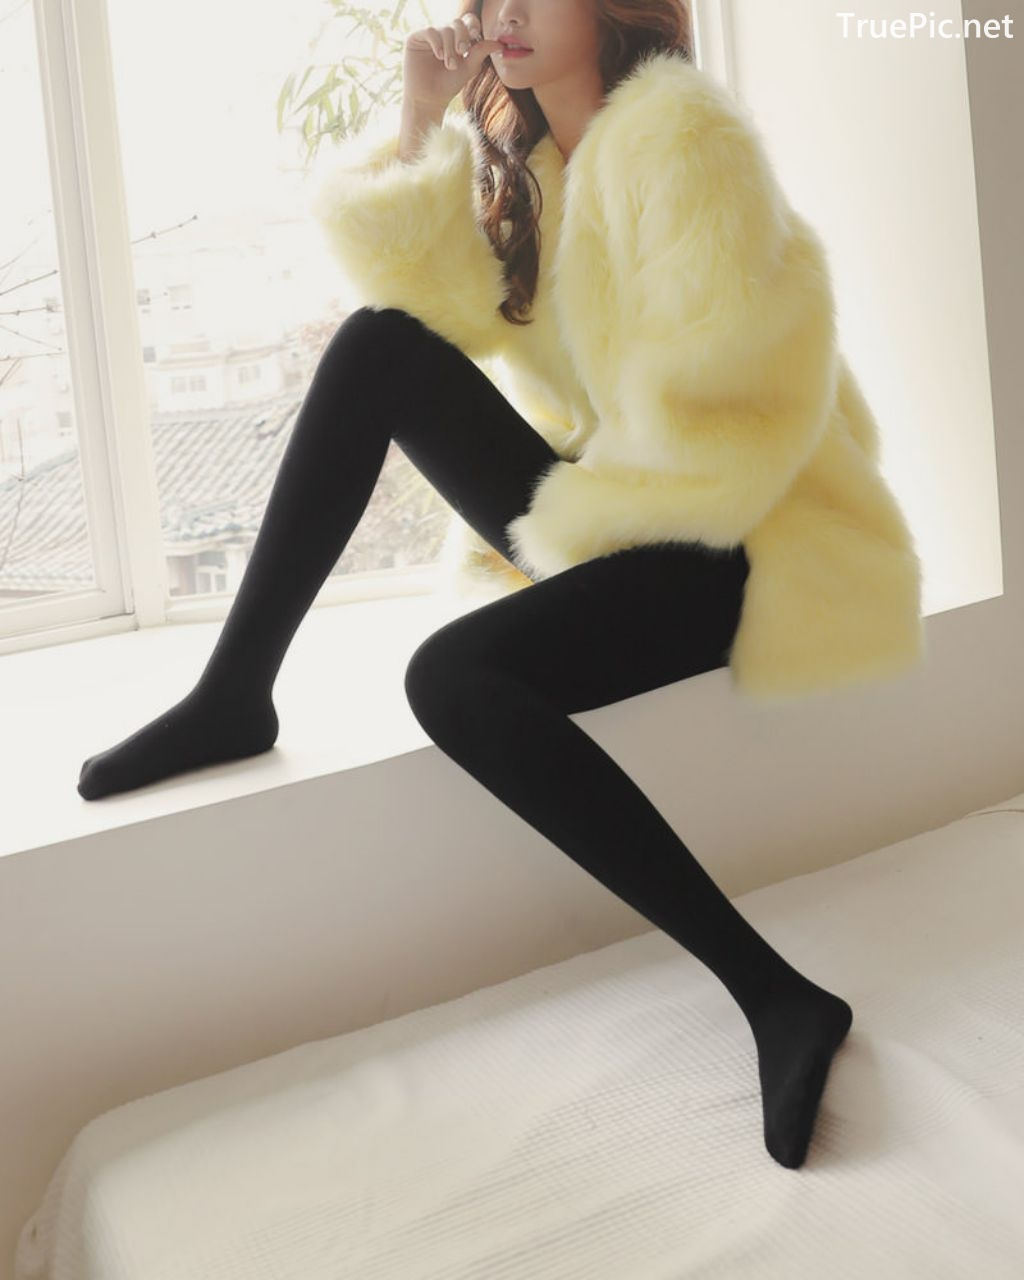 Image-Korean-Fashion-Model-Jin-Hee-Black-Tights-And-Winter-Sweater-Dress-TruePic.net- Picture-5